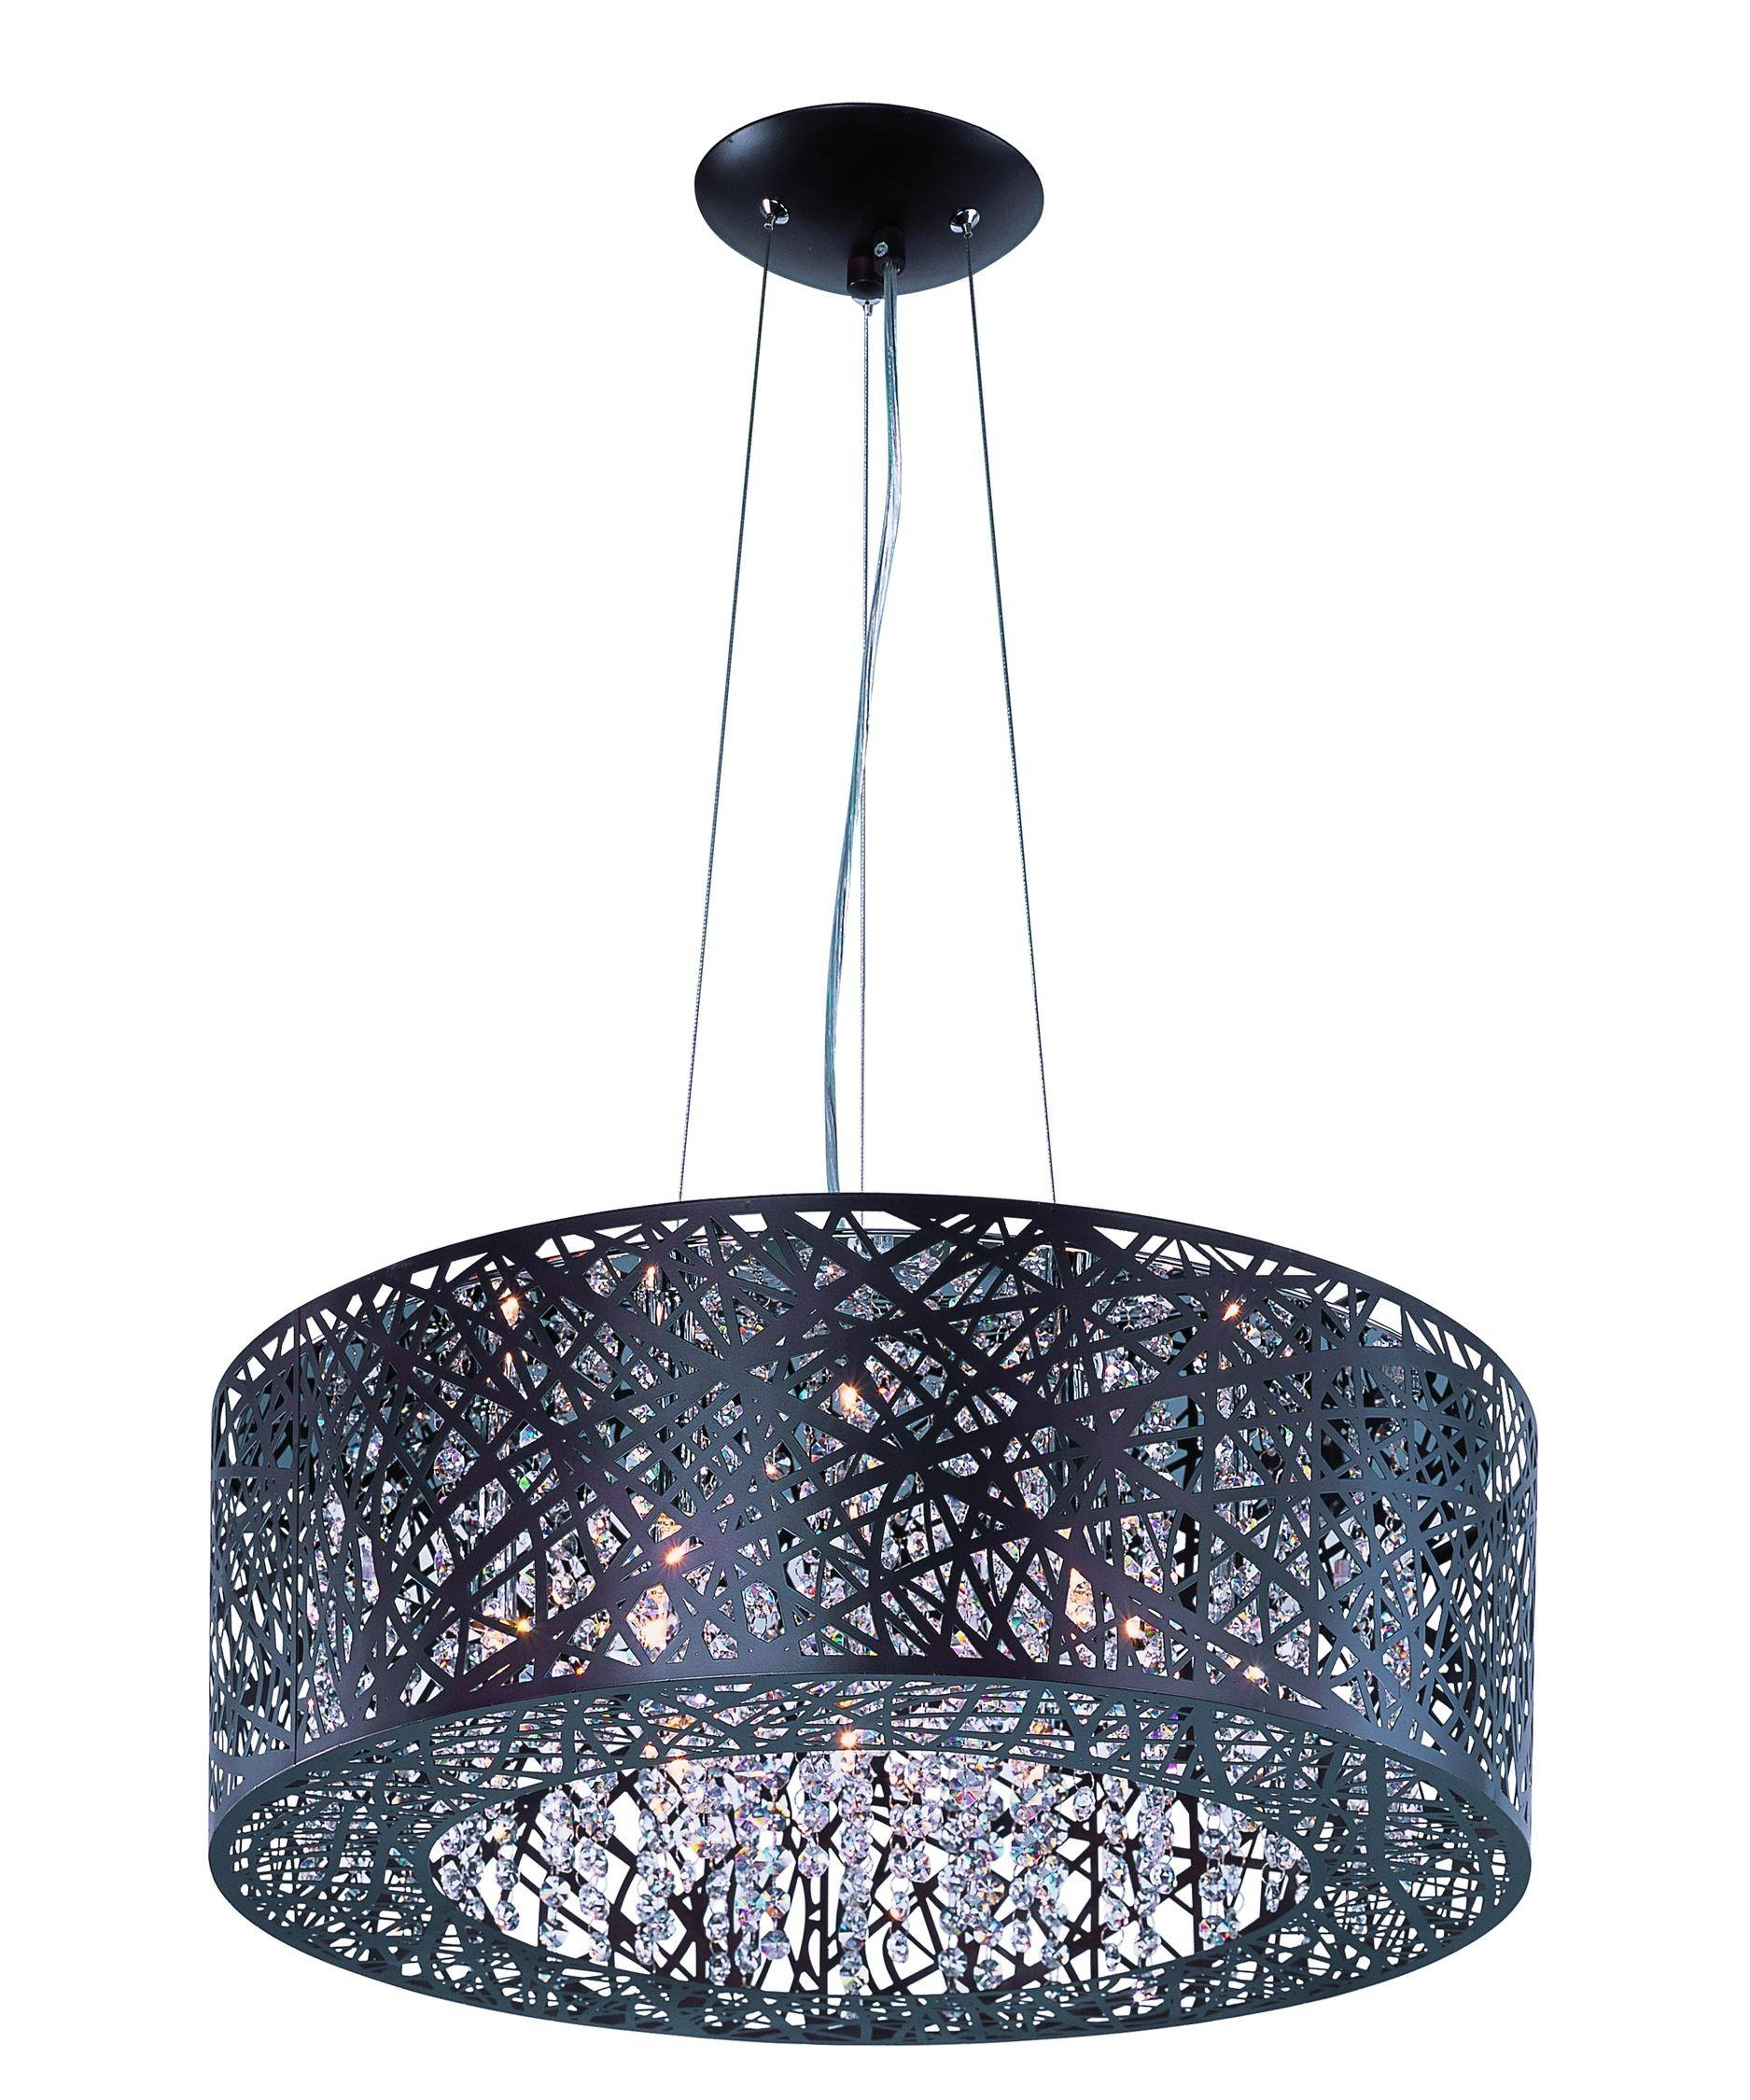 Et2 Lighting E21308 Inca 24 Inch Wide 9 Light Large Pendant Intended For Inca Pendant Lights (View 9 of 15)